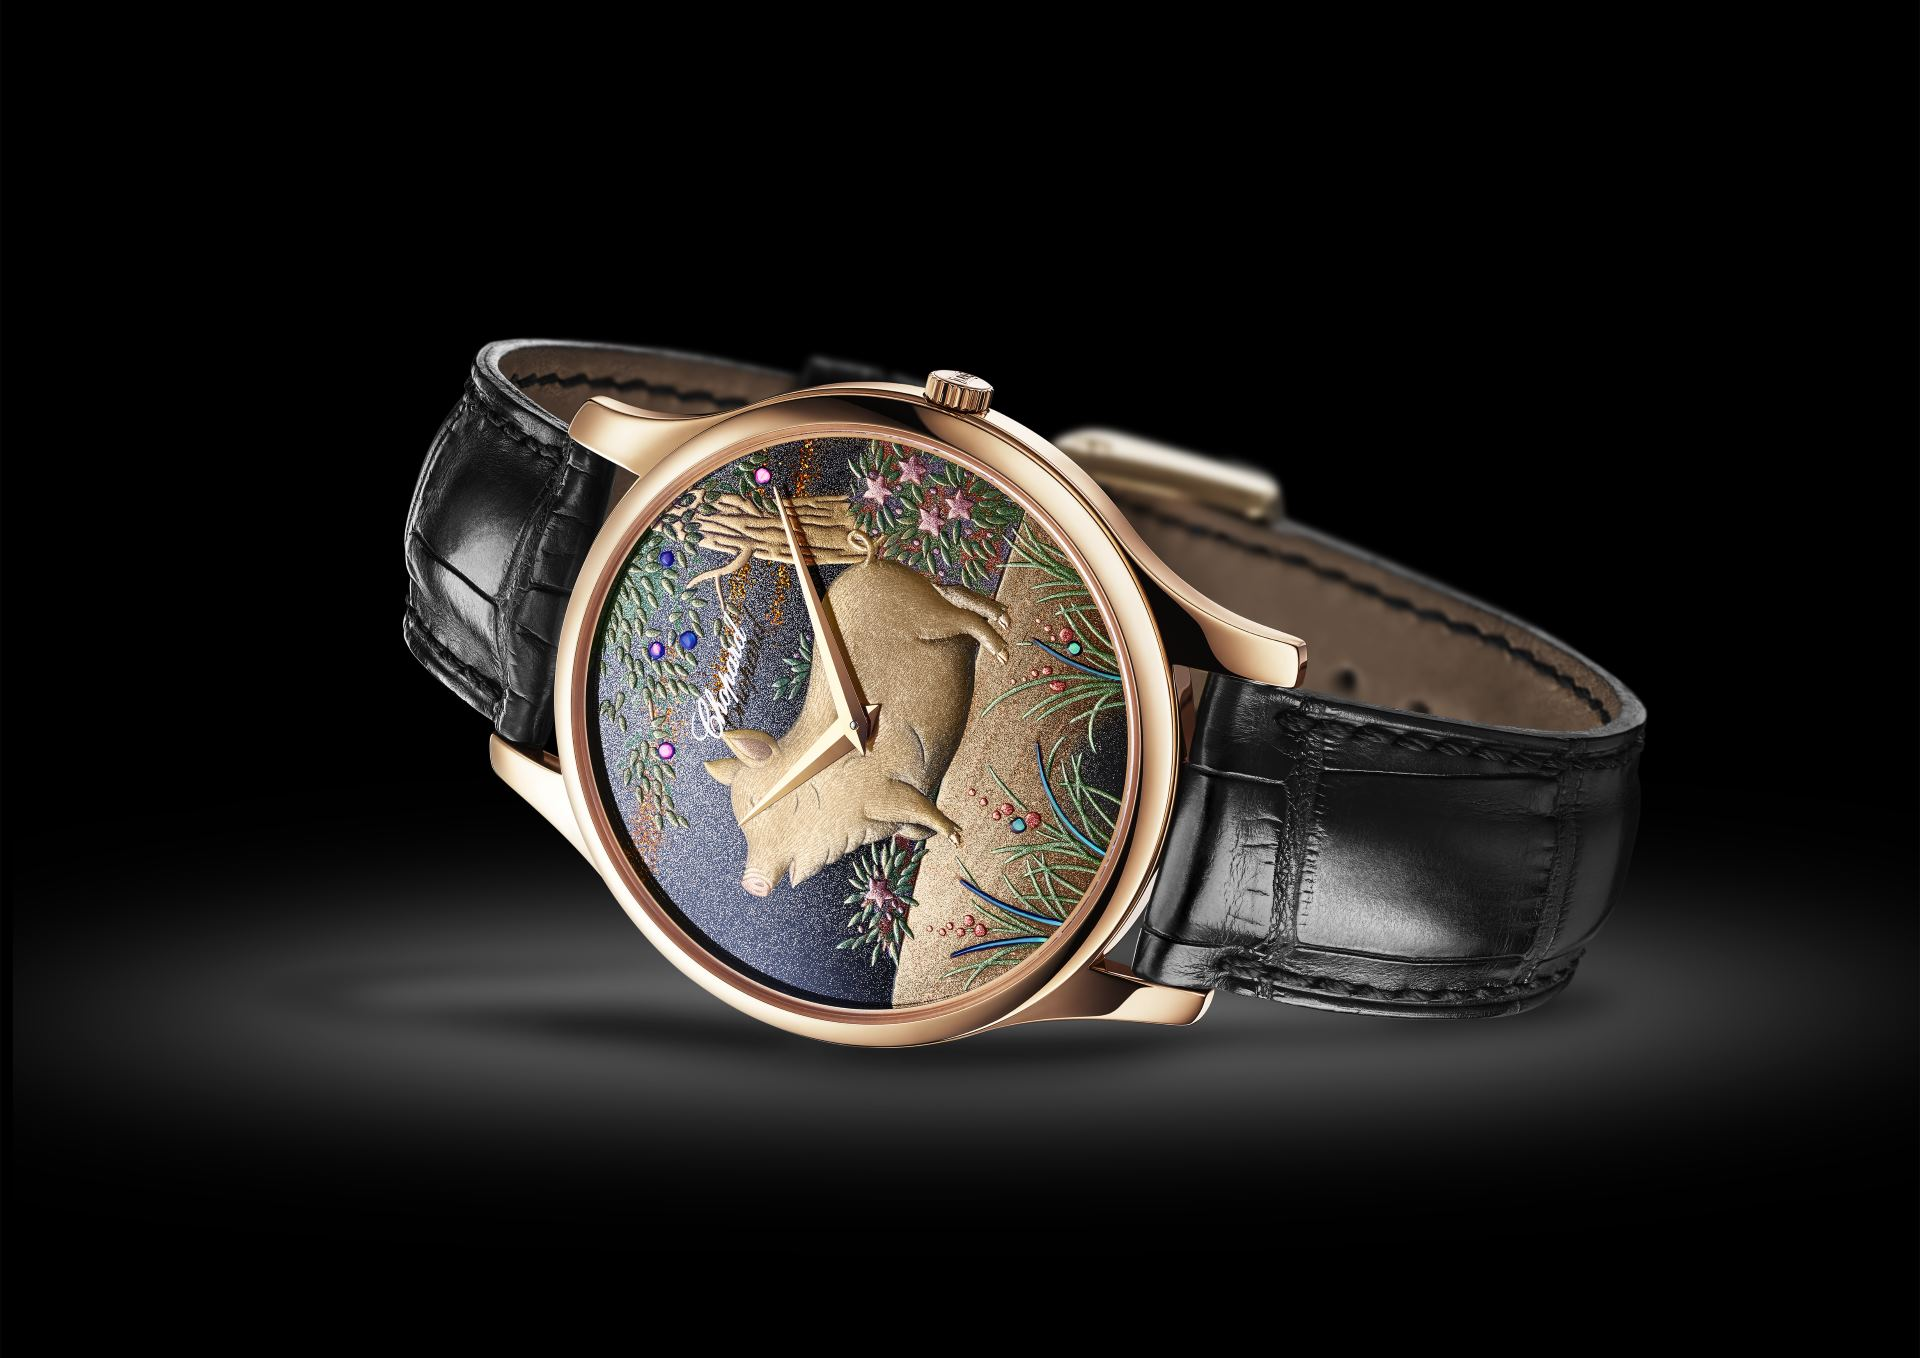 L.U.C XP Urushi Year of the Pig von Chopard.